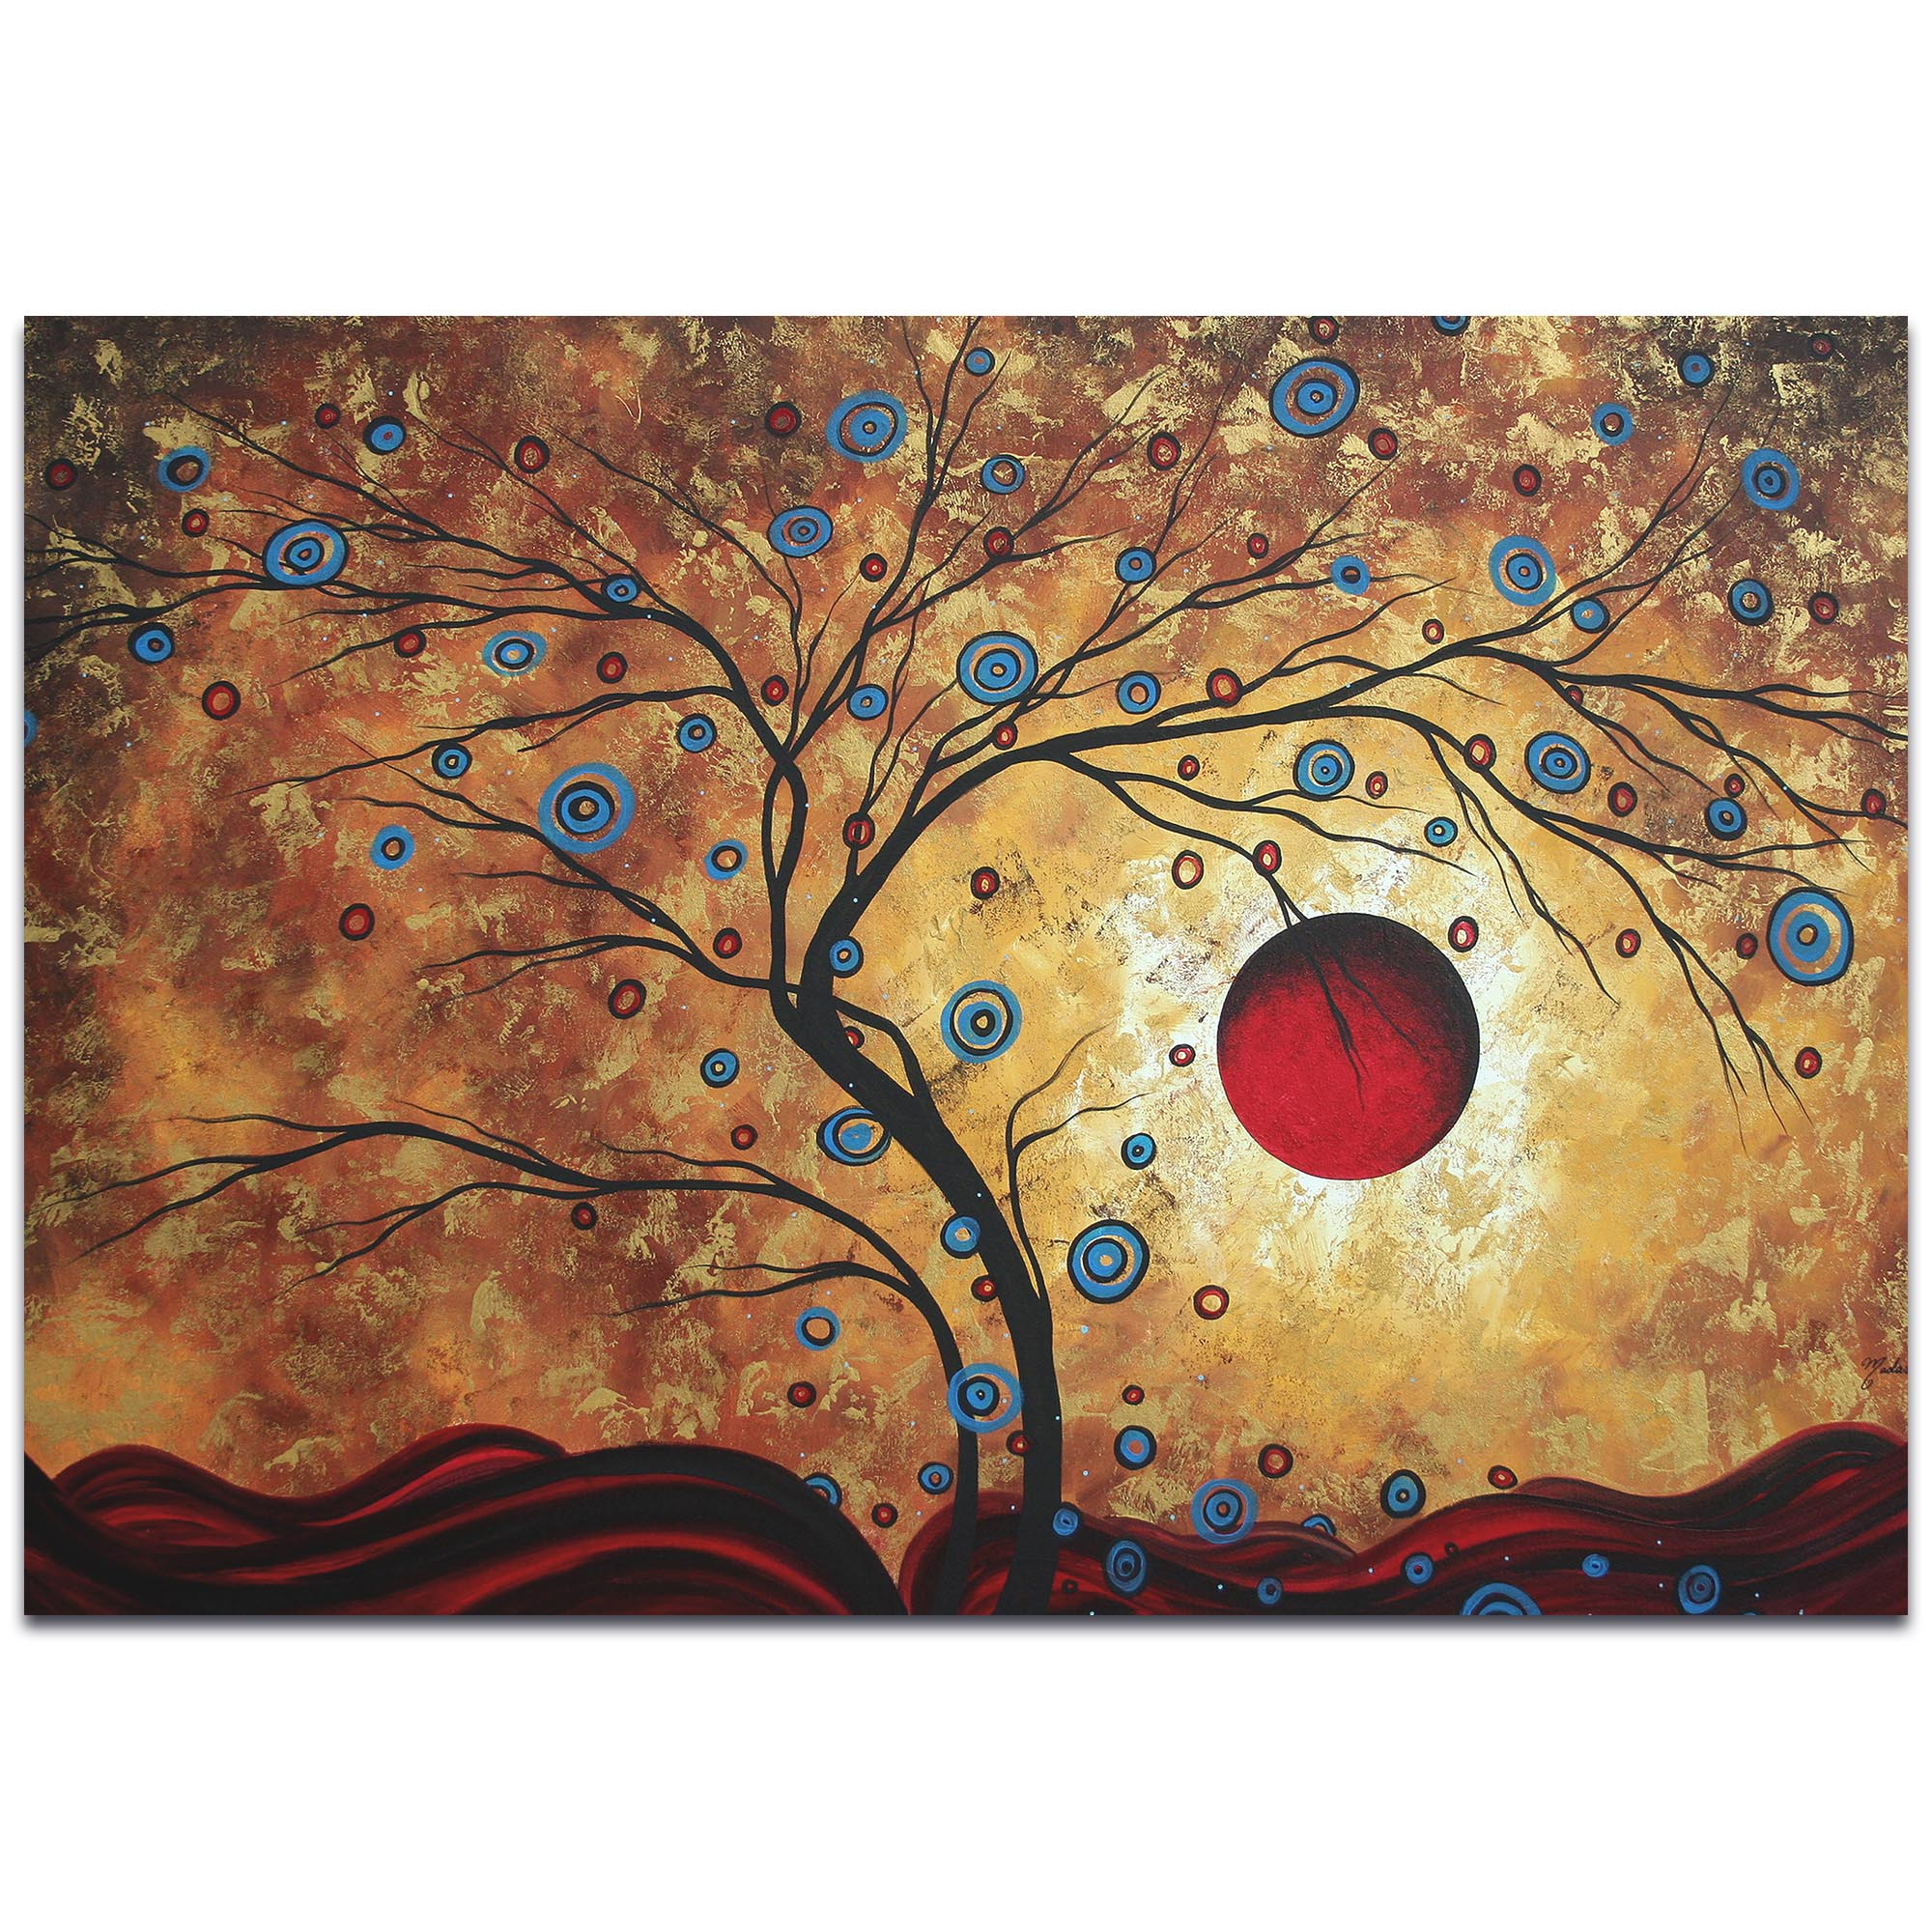 Landscape Painting 'Free as the Wind' - Abstract Tree Art on Metal or Acrylic